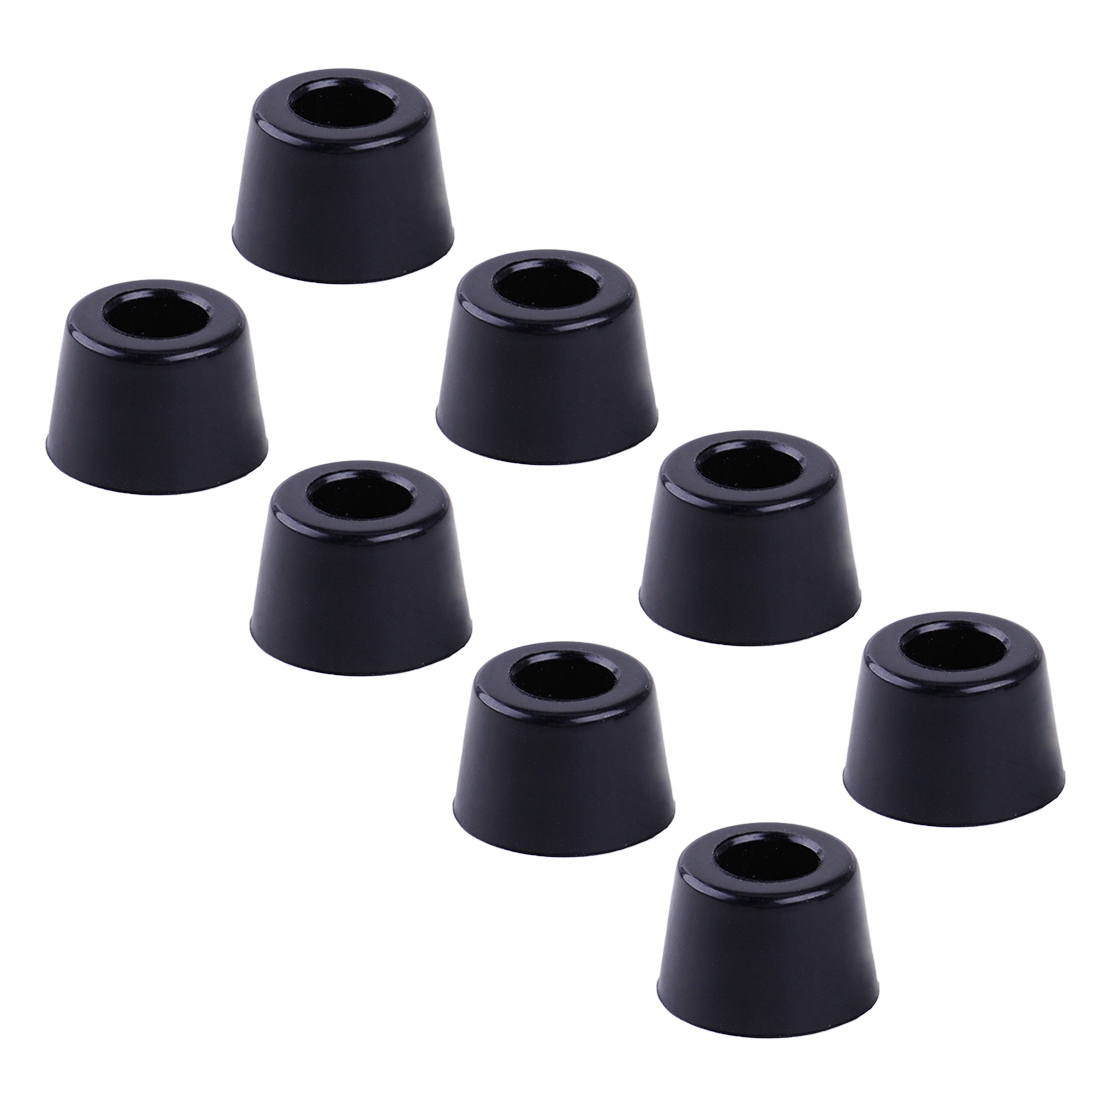 8pcs <font><b>Speaker</b></font> Cabinet Furniture Chair Table Box Conical Rubber Foot Pad Stand Shock Absorber <font><b>14</b></font>*11*9mm Skid Resistance image